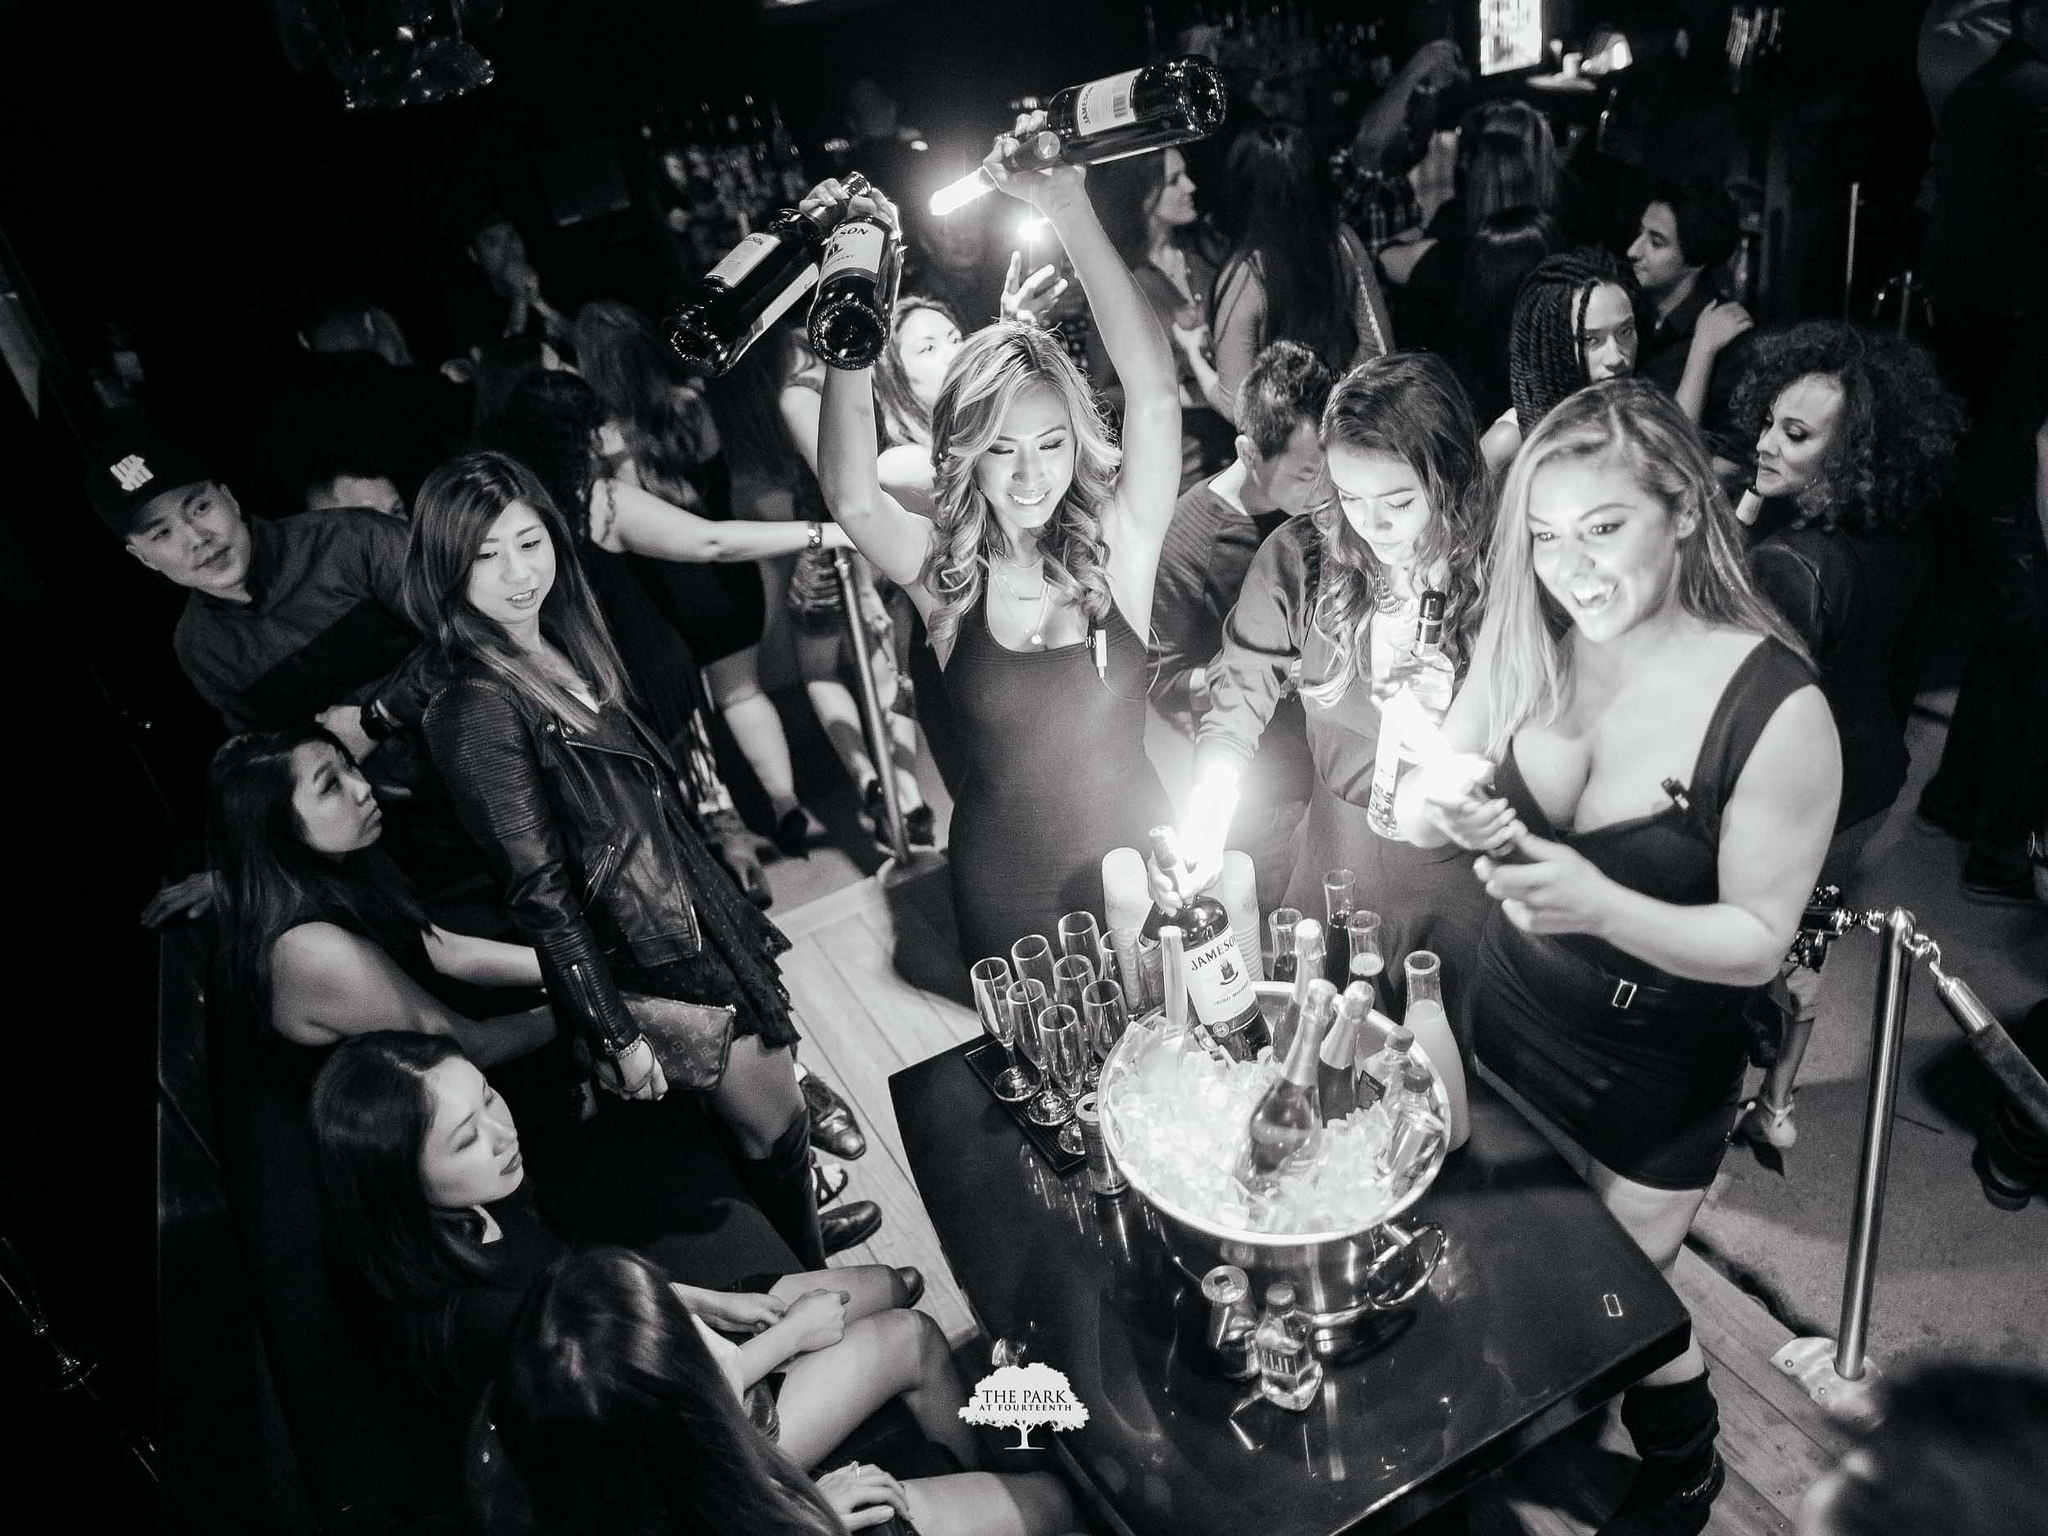 Noteworthy Nights - A celebration is not just for the night. it's a lifetime memory. RSVP for your bottle service reservation and remember your monumental night for life.